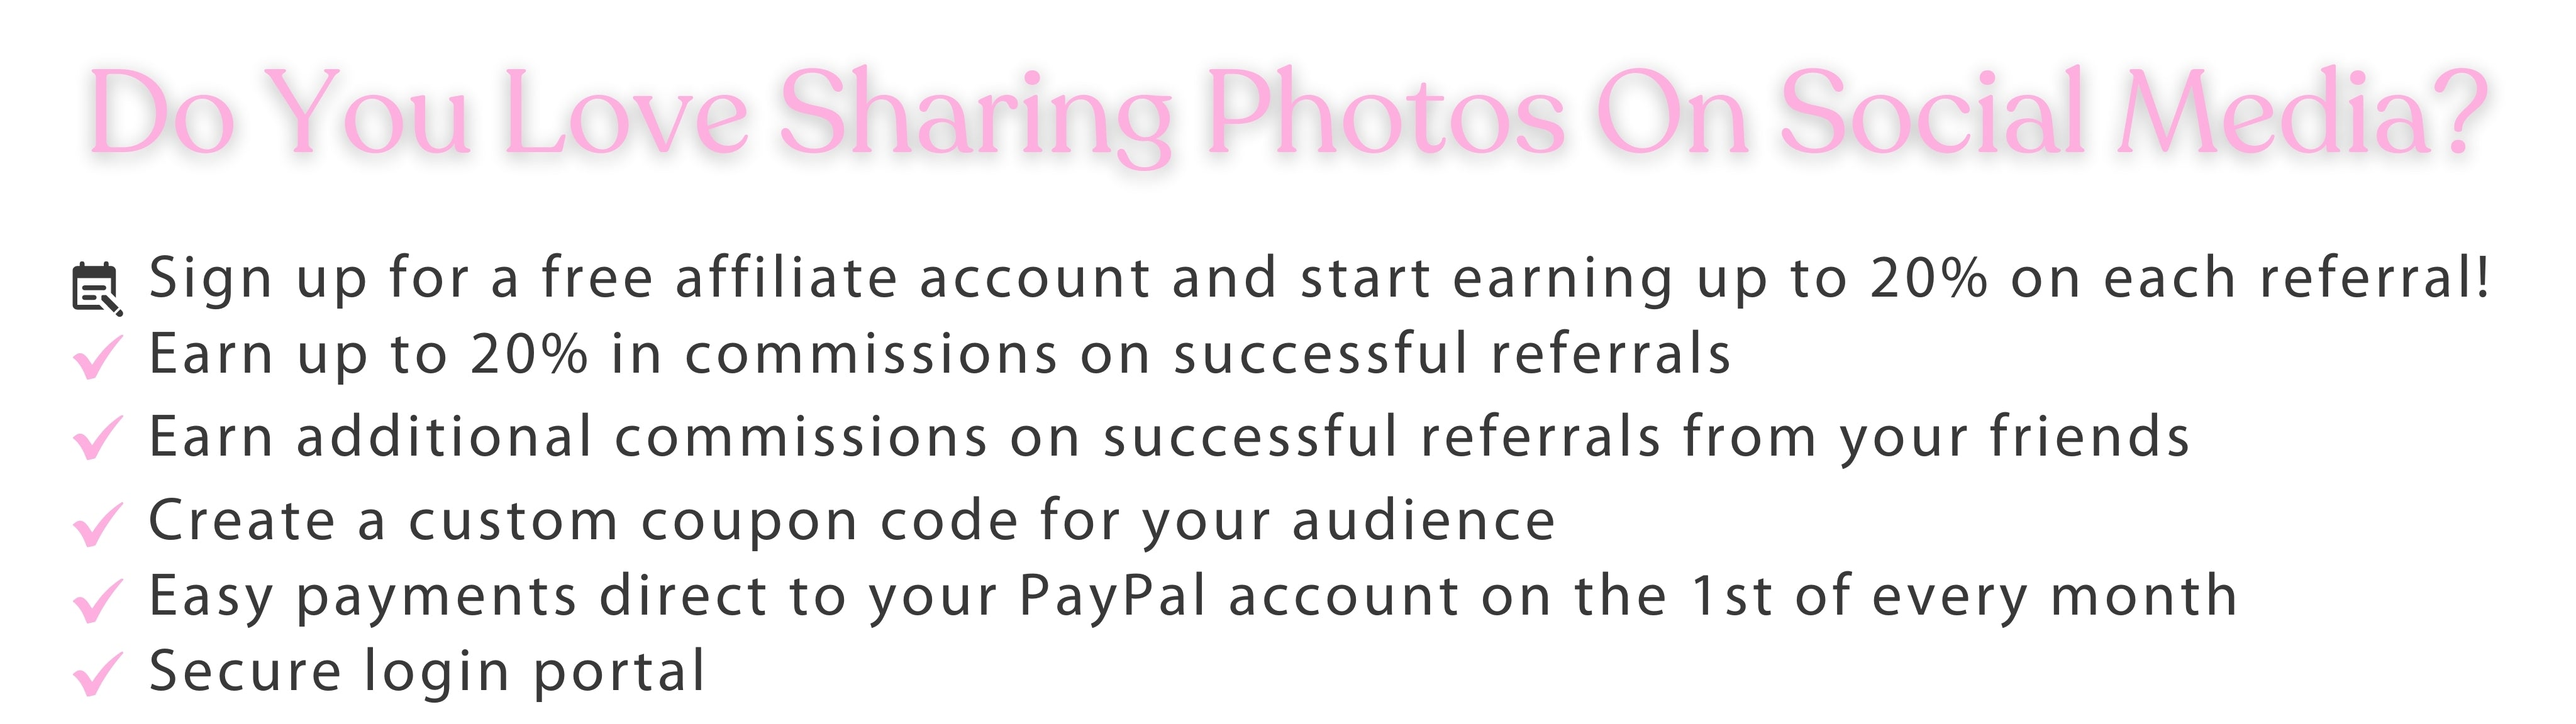 Sign up for a free affiliate account and start earning up to 20% on each referral! Earn up to 20% in commissions on successful referrals Earn additional commissions on successful referrals from your friends